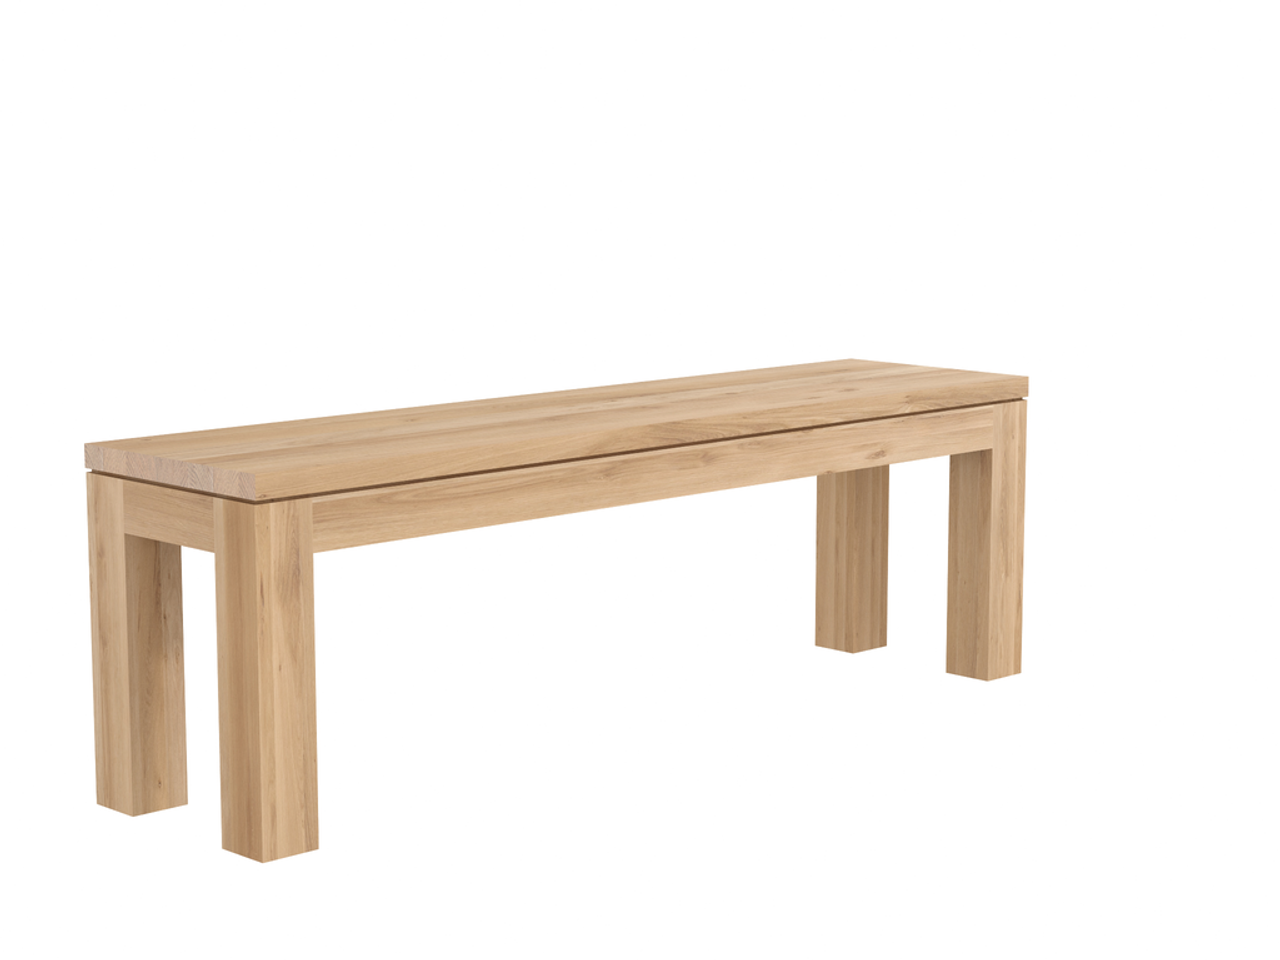 Oak Plank Dining Bench